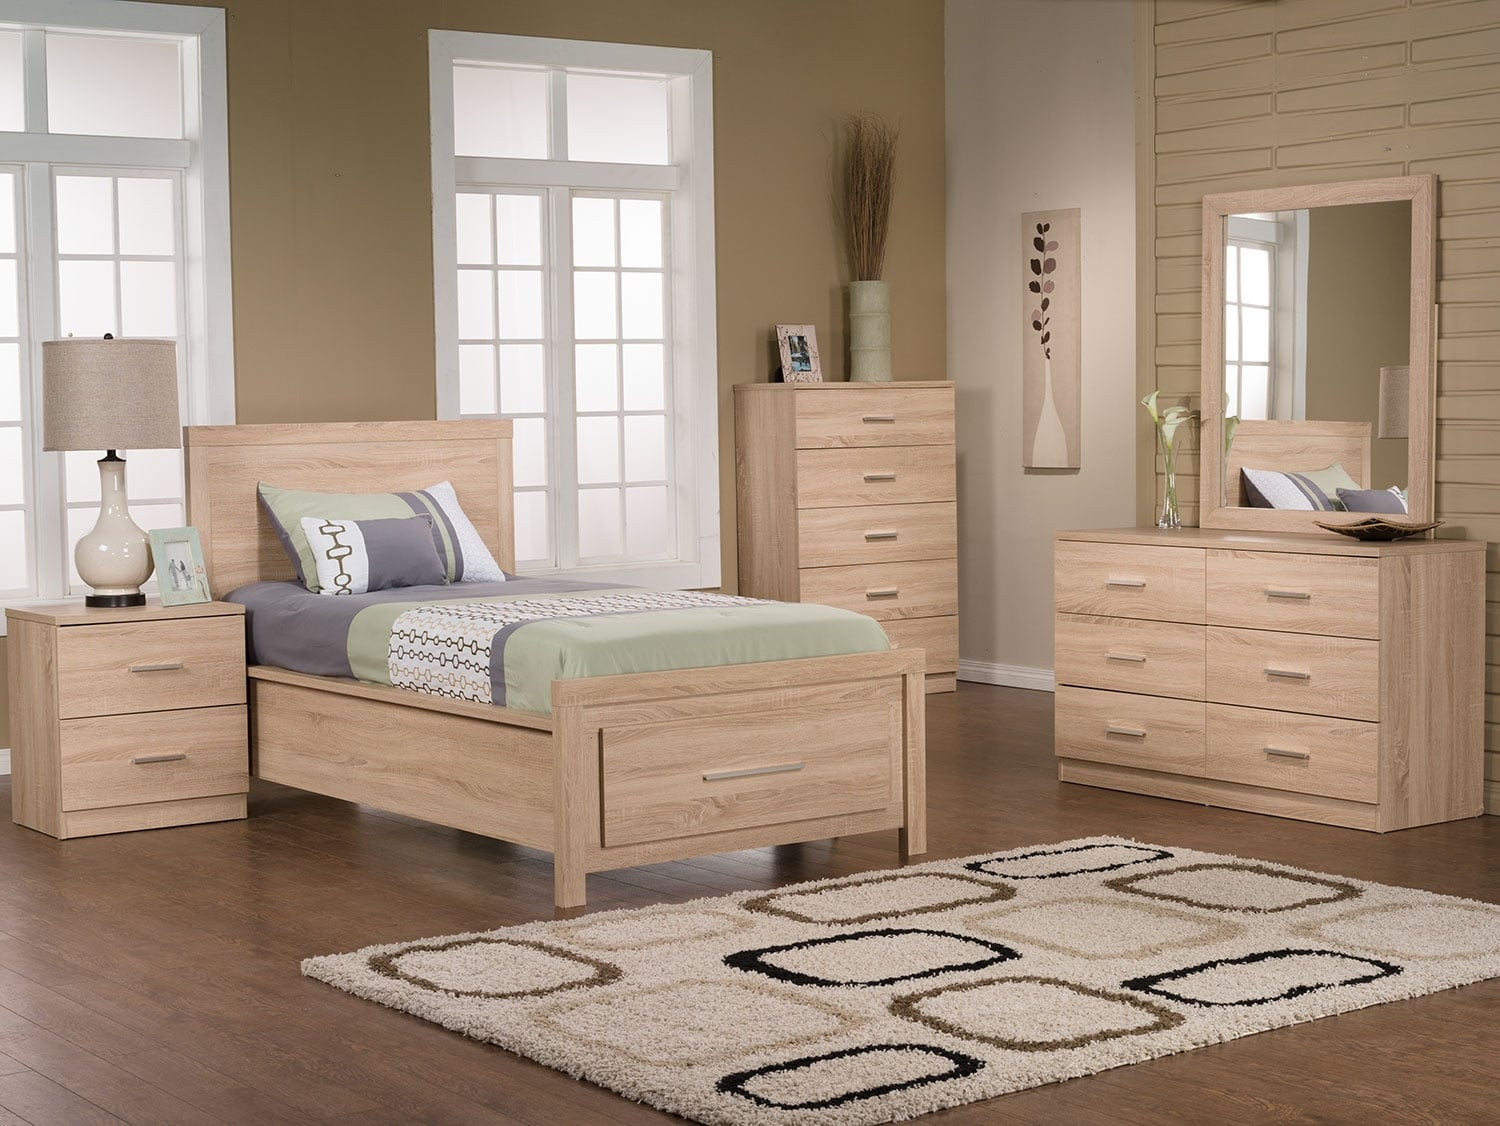 Bedroom Furniture - Sierra 8pc Bedroom